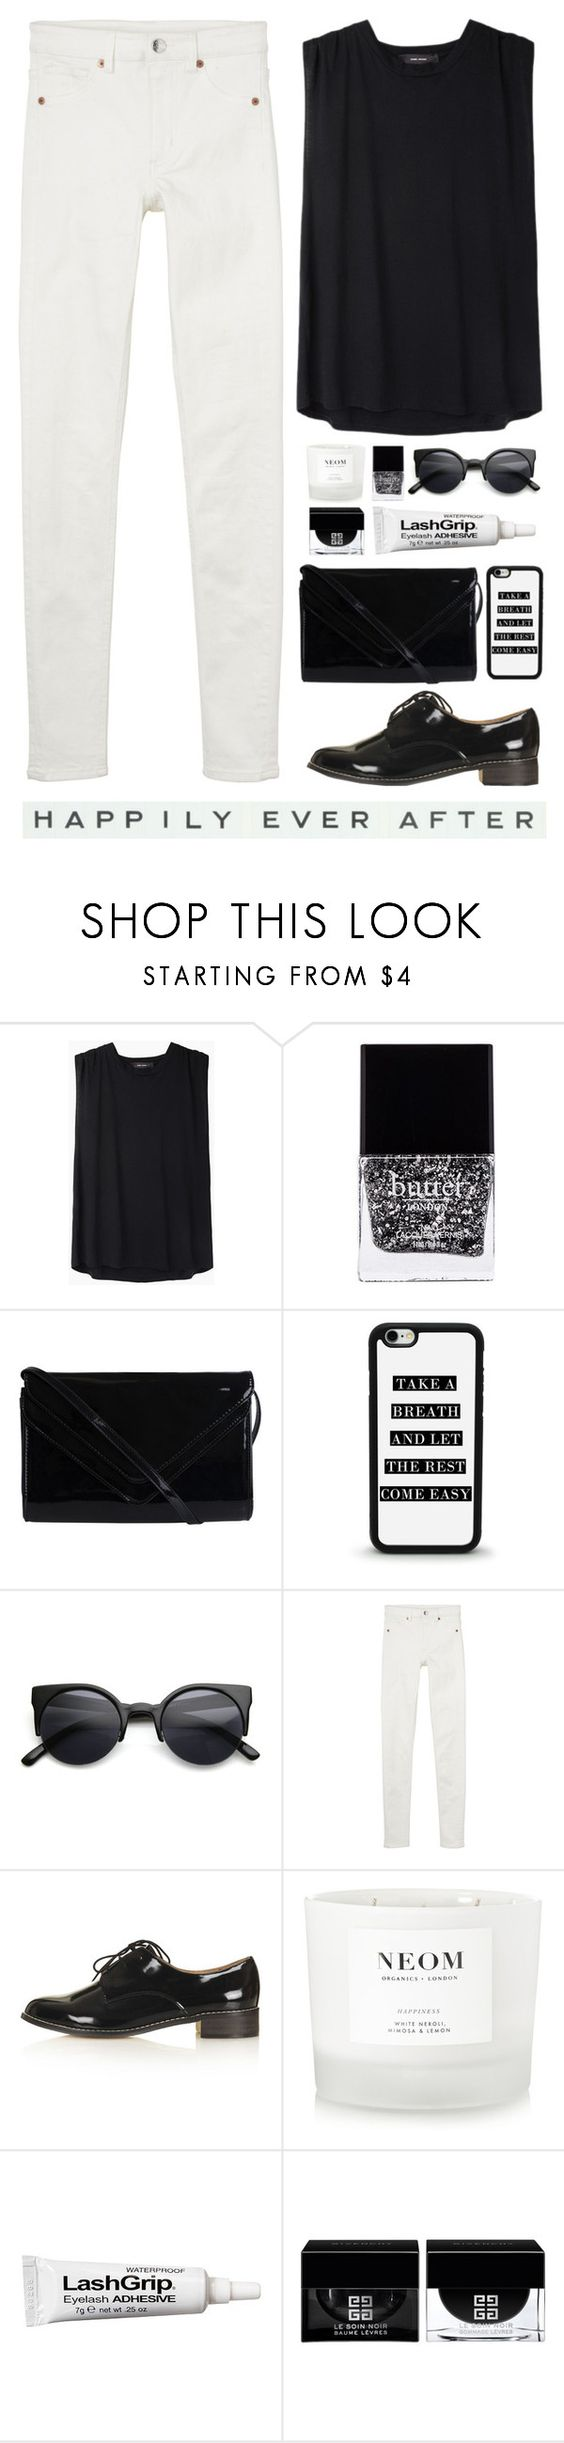 """""""Happily Ever After"""" by lolipop132 ❤ liked on Polyvore featuring Isabel Marant, Butter London, Pieces, Retrò, Monki, Topshop, NEOM Organics, Ardell, Givenchy and Vintage Playing Cards"""